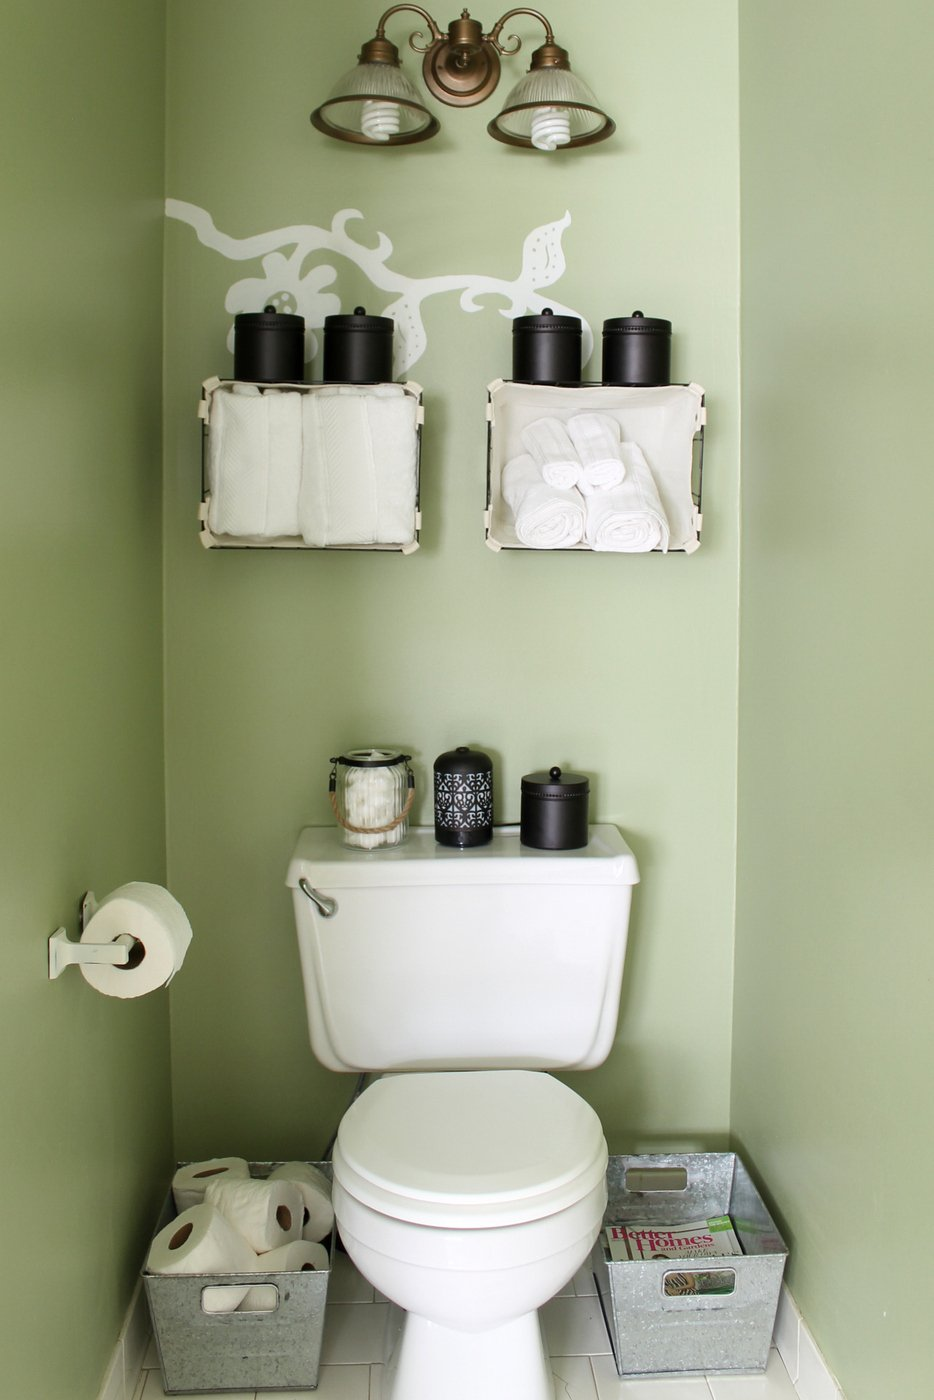 Small bathroom organization ideas the country chic cottage Organizing ideas for small bathrooms